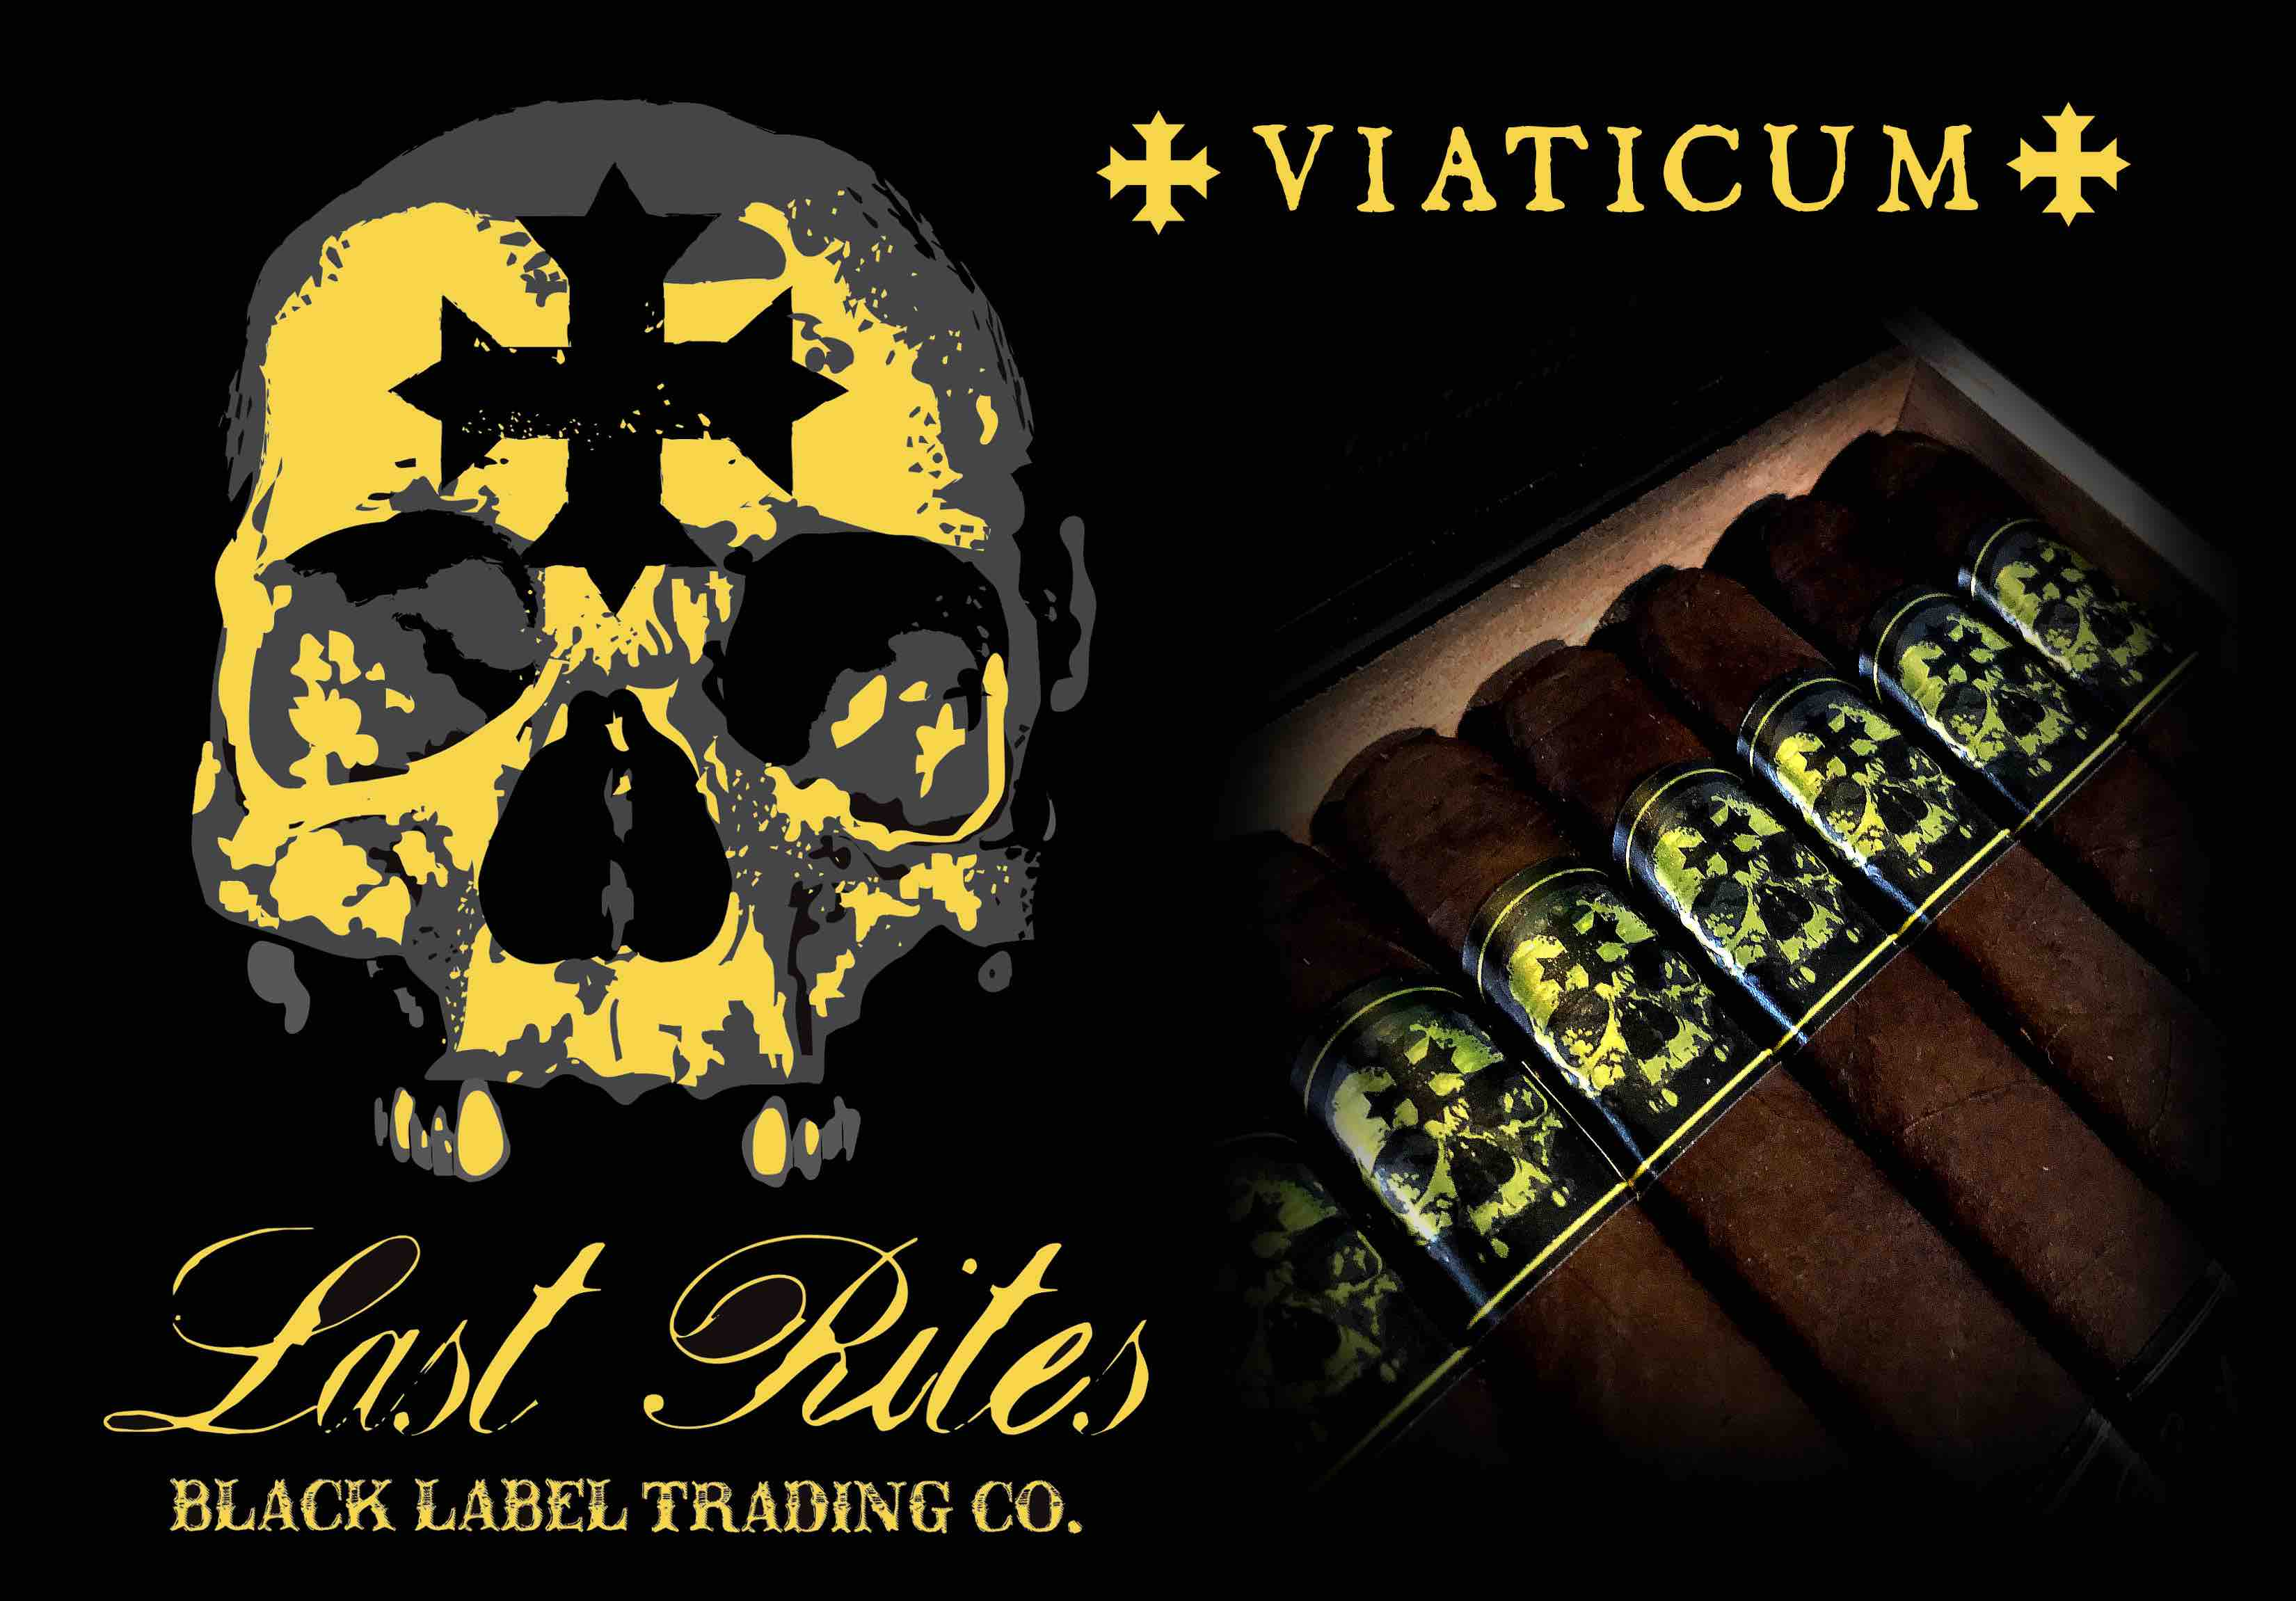 Cigar News: Black Label Trading Company Last Rites Viaticum Heads to Retailers